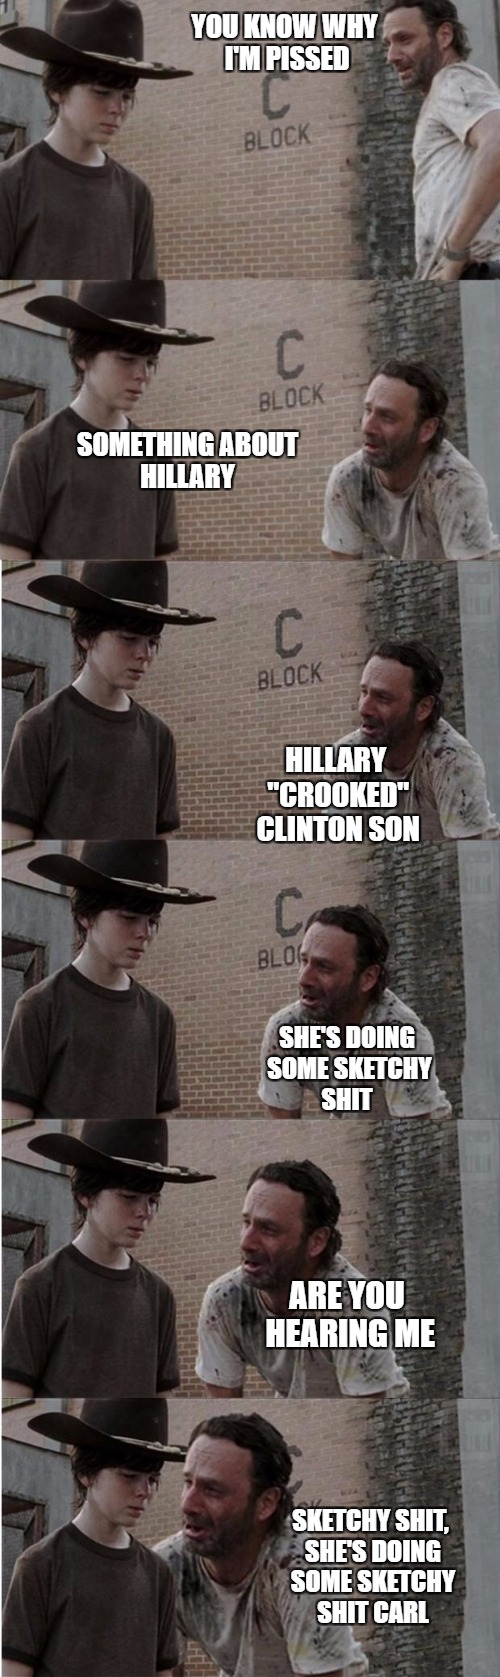 "She gets away with it | YOU KNOW WHY I'M PISSED SOMETHING ABOUT HILLARY HILLARY ""CROOKED"" CLINTON SON SHE'S DOING SOME SKETCHY SHIT ARE YOU HEARING ME SKETCHY SHIT, 